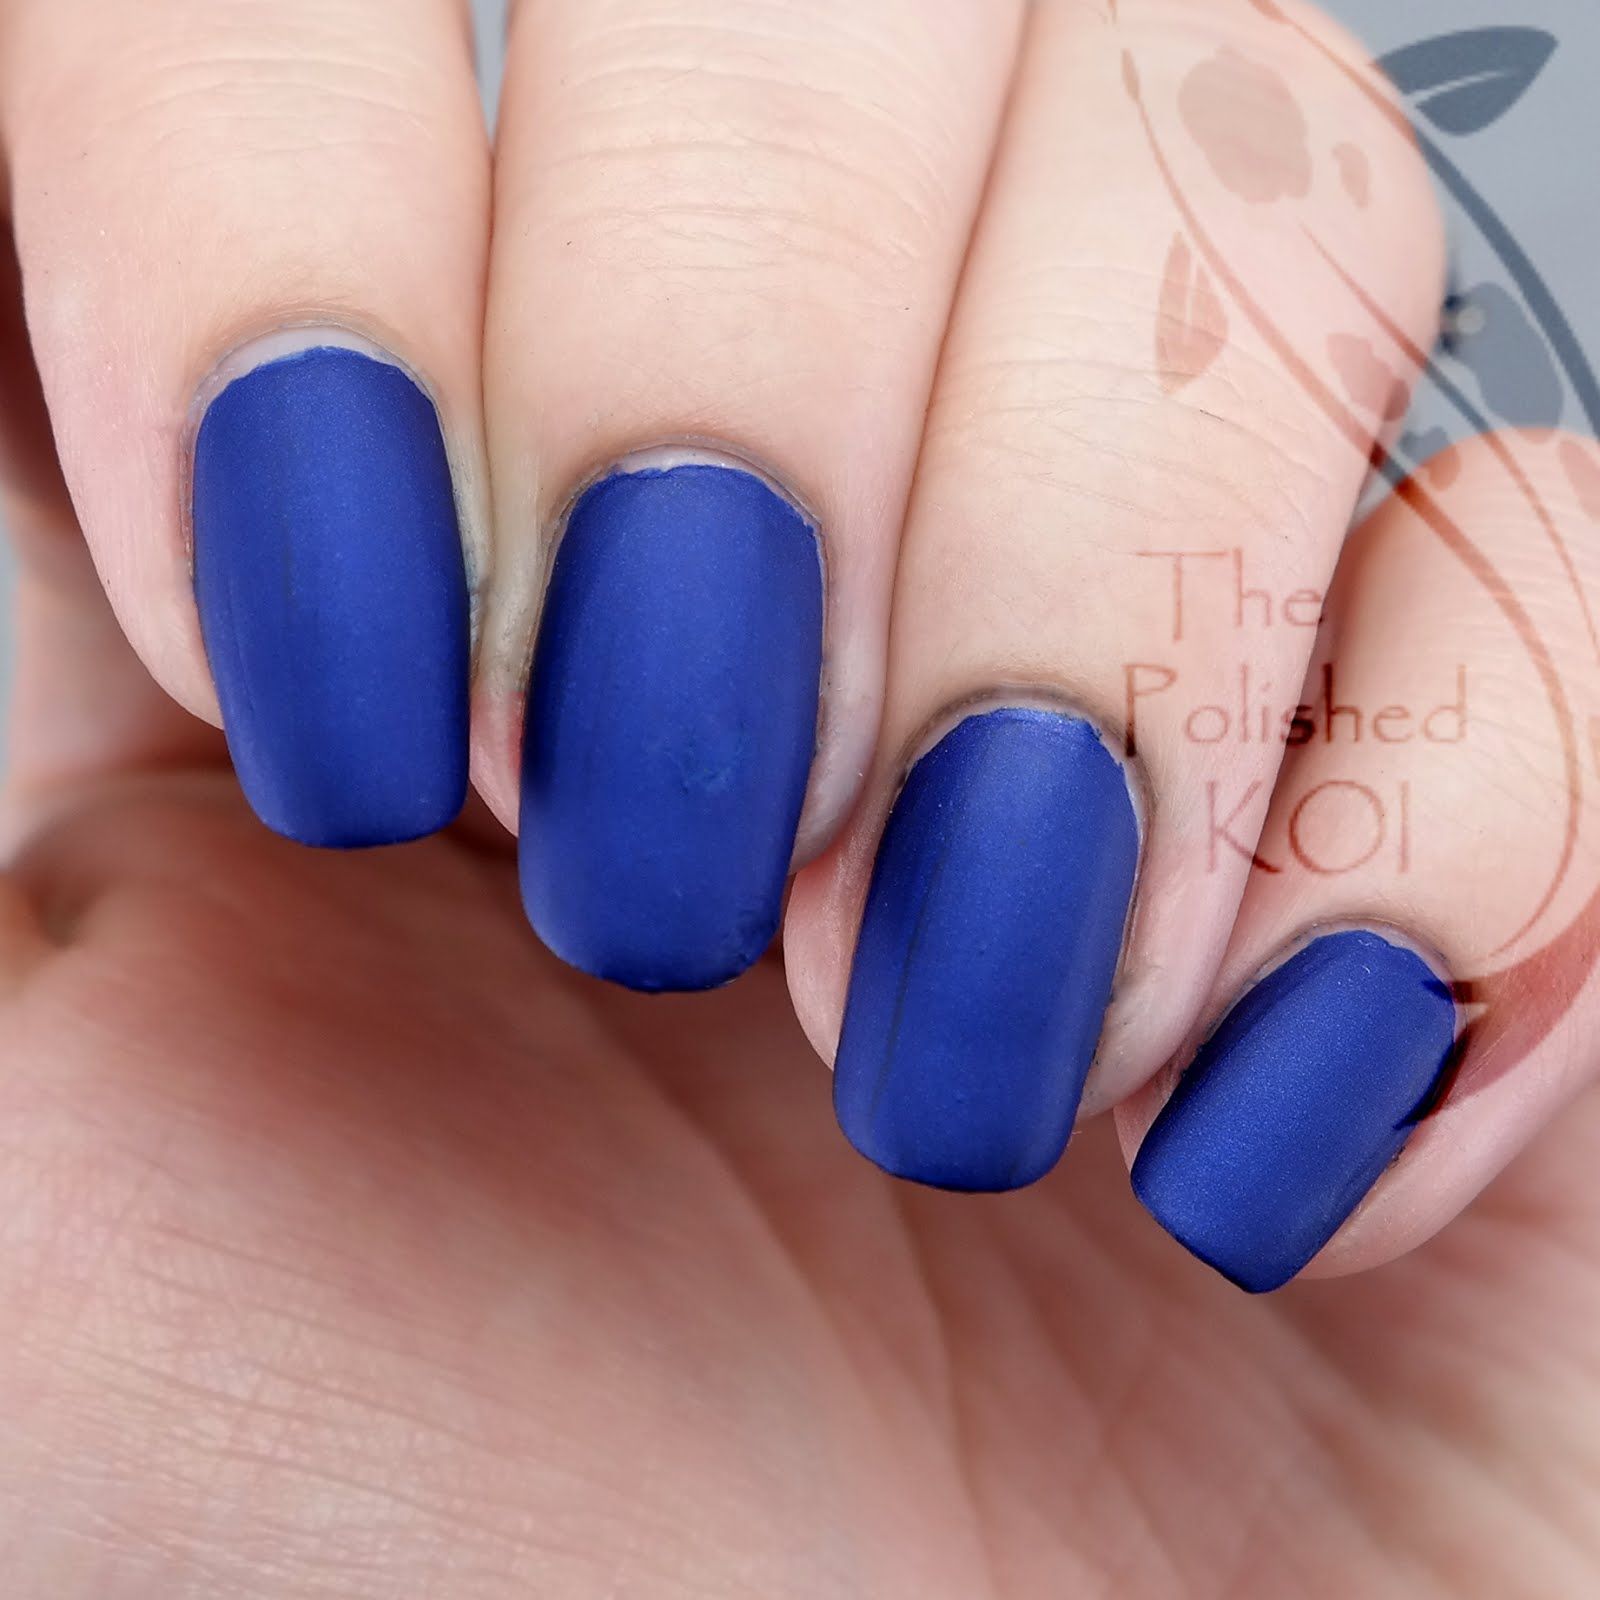 The polished koi thelacquerring tardis blue for this post though i wanted to keep the focus on the color and not go all out with the nail art so i stamped a design from a bornpretty store plate prinsesfo Choice Image